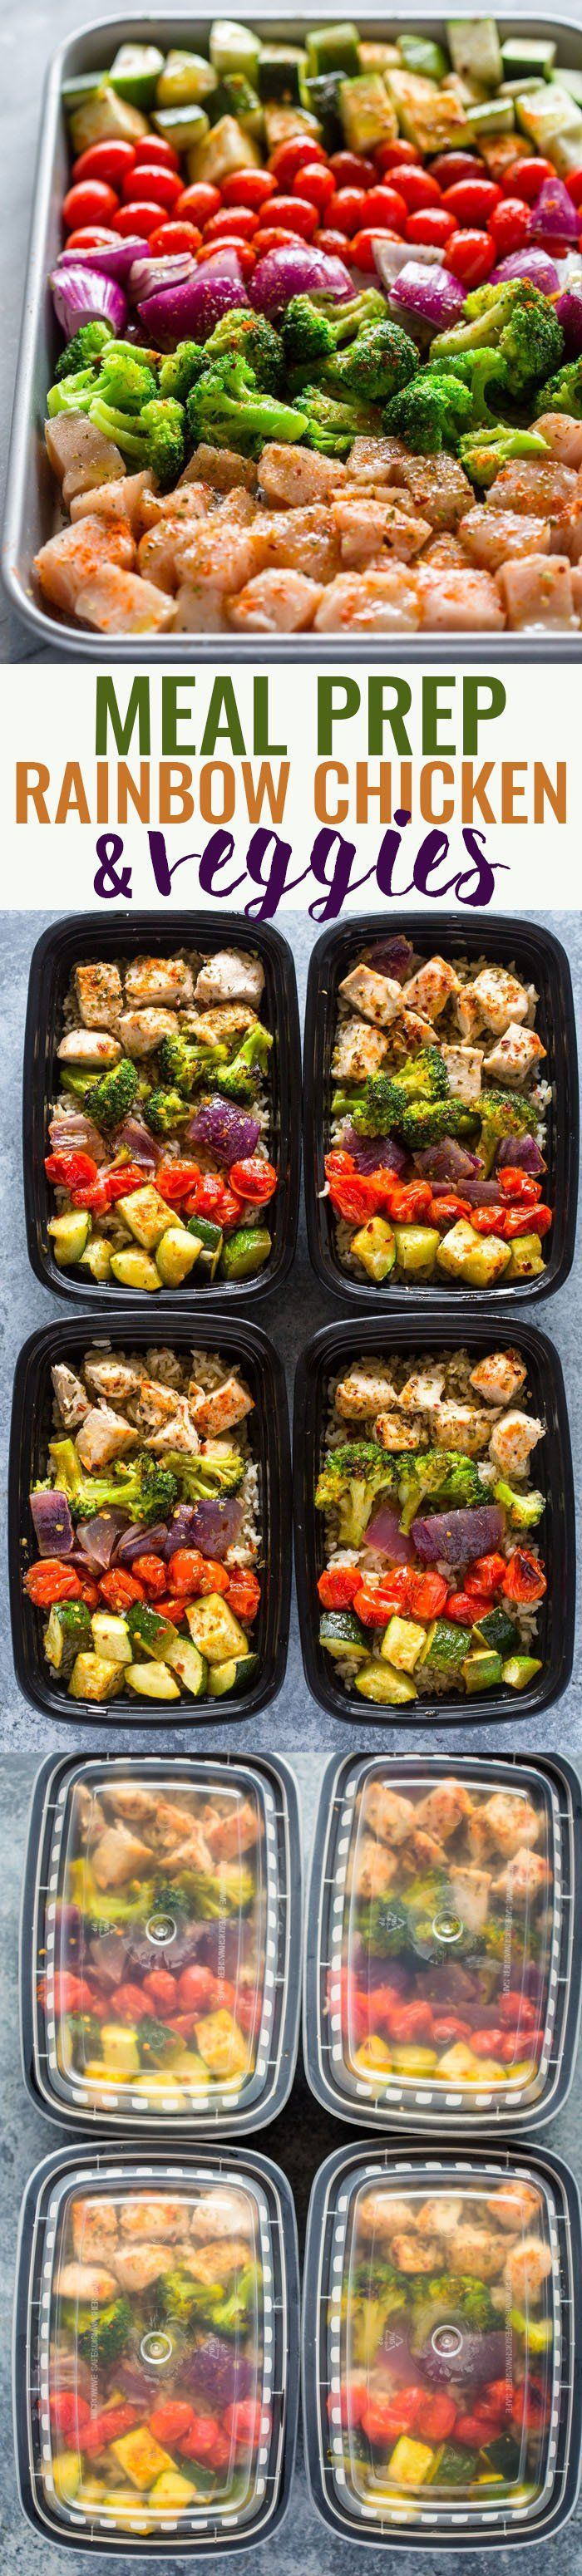 589 best eco bento lunch ideas images on pinterest bento lunch meal prep healthy chicken and veggies forumfinder Choice Image